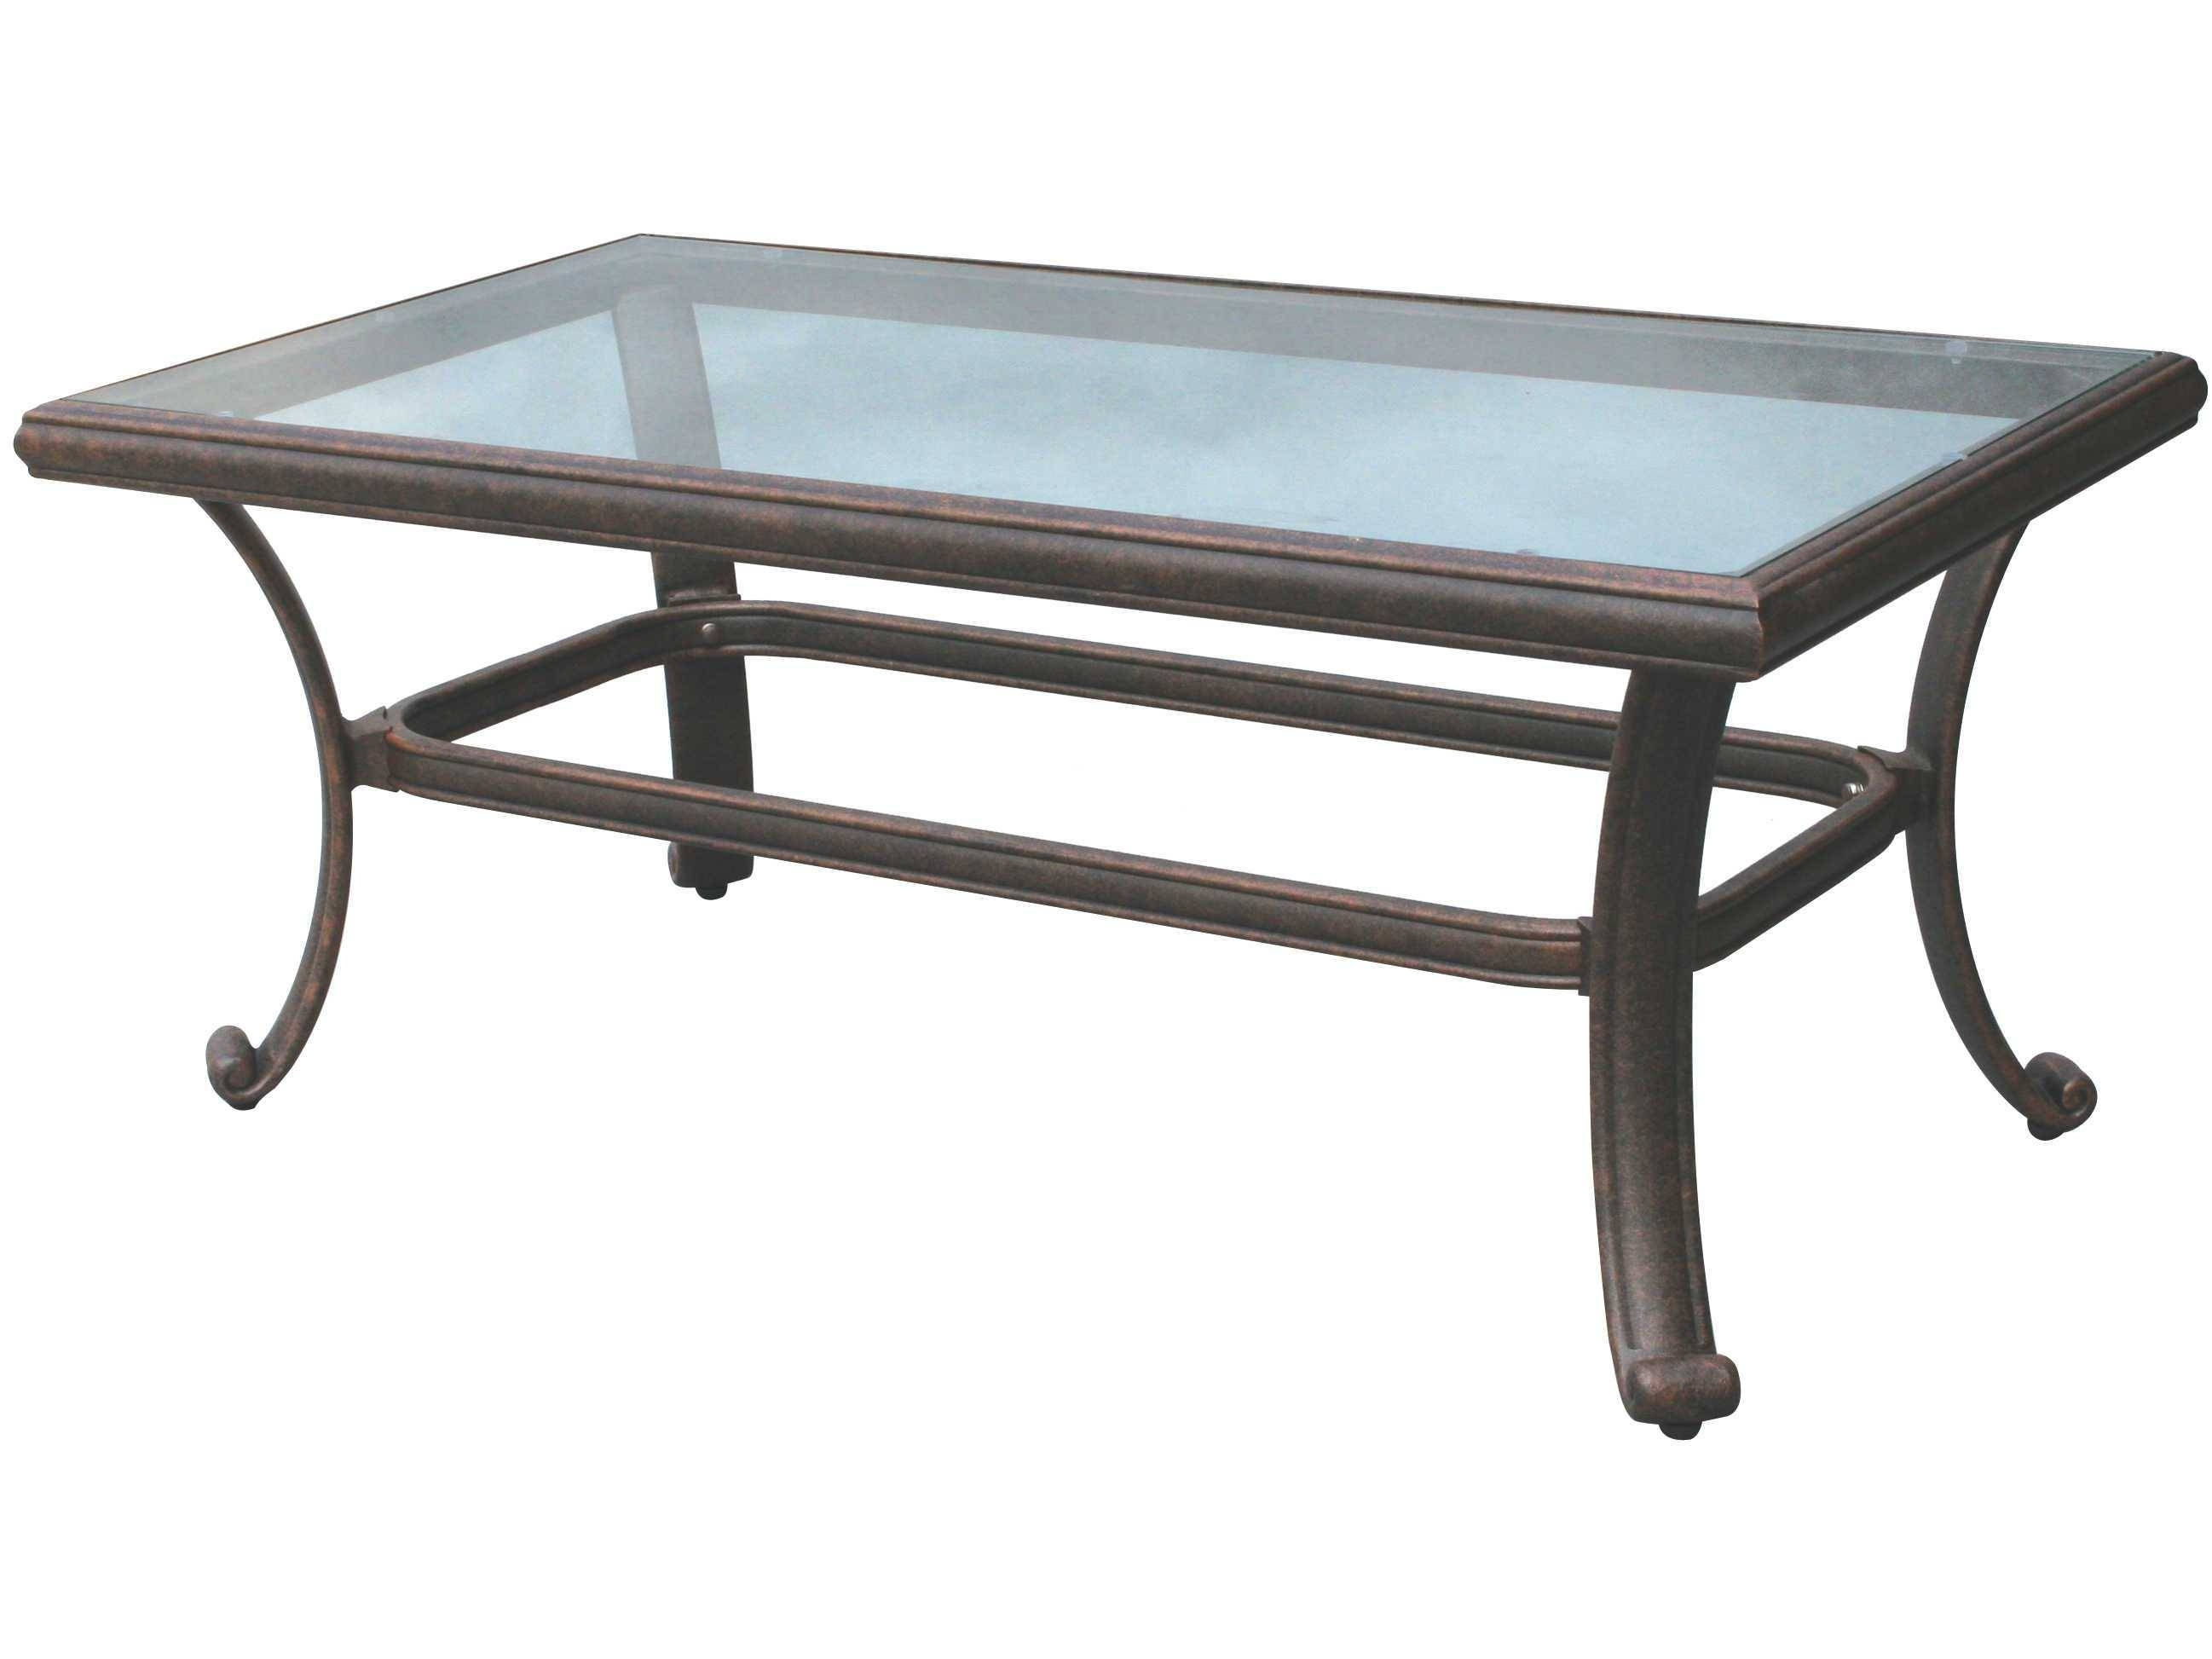 Darlee Outdoor Living Glass Top Cast Aluminum Antique Bronze 42 X pertaining to Vintage Glass Top Coffee Tables (Image 10 of 30)